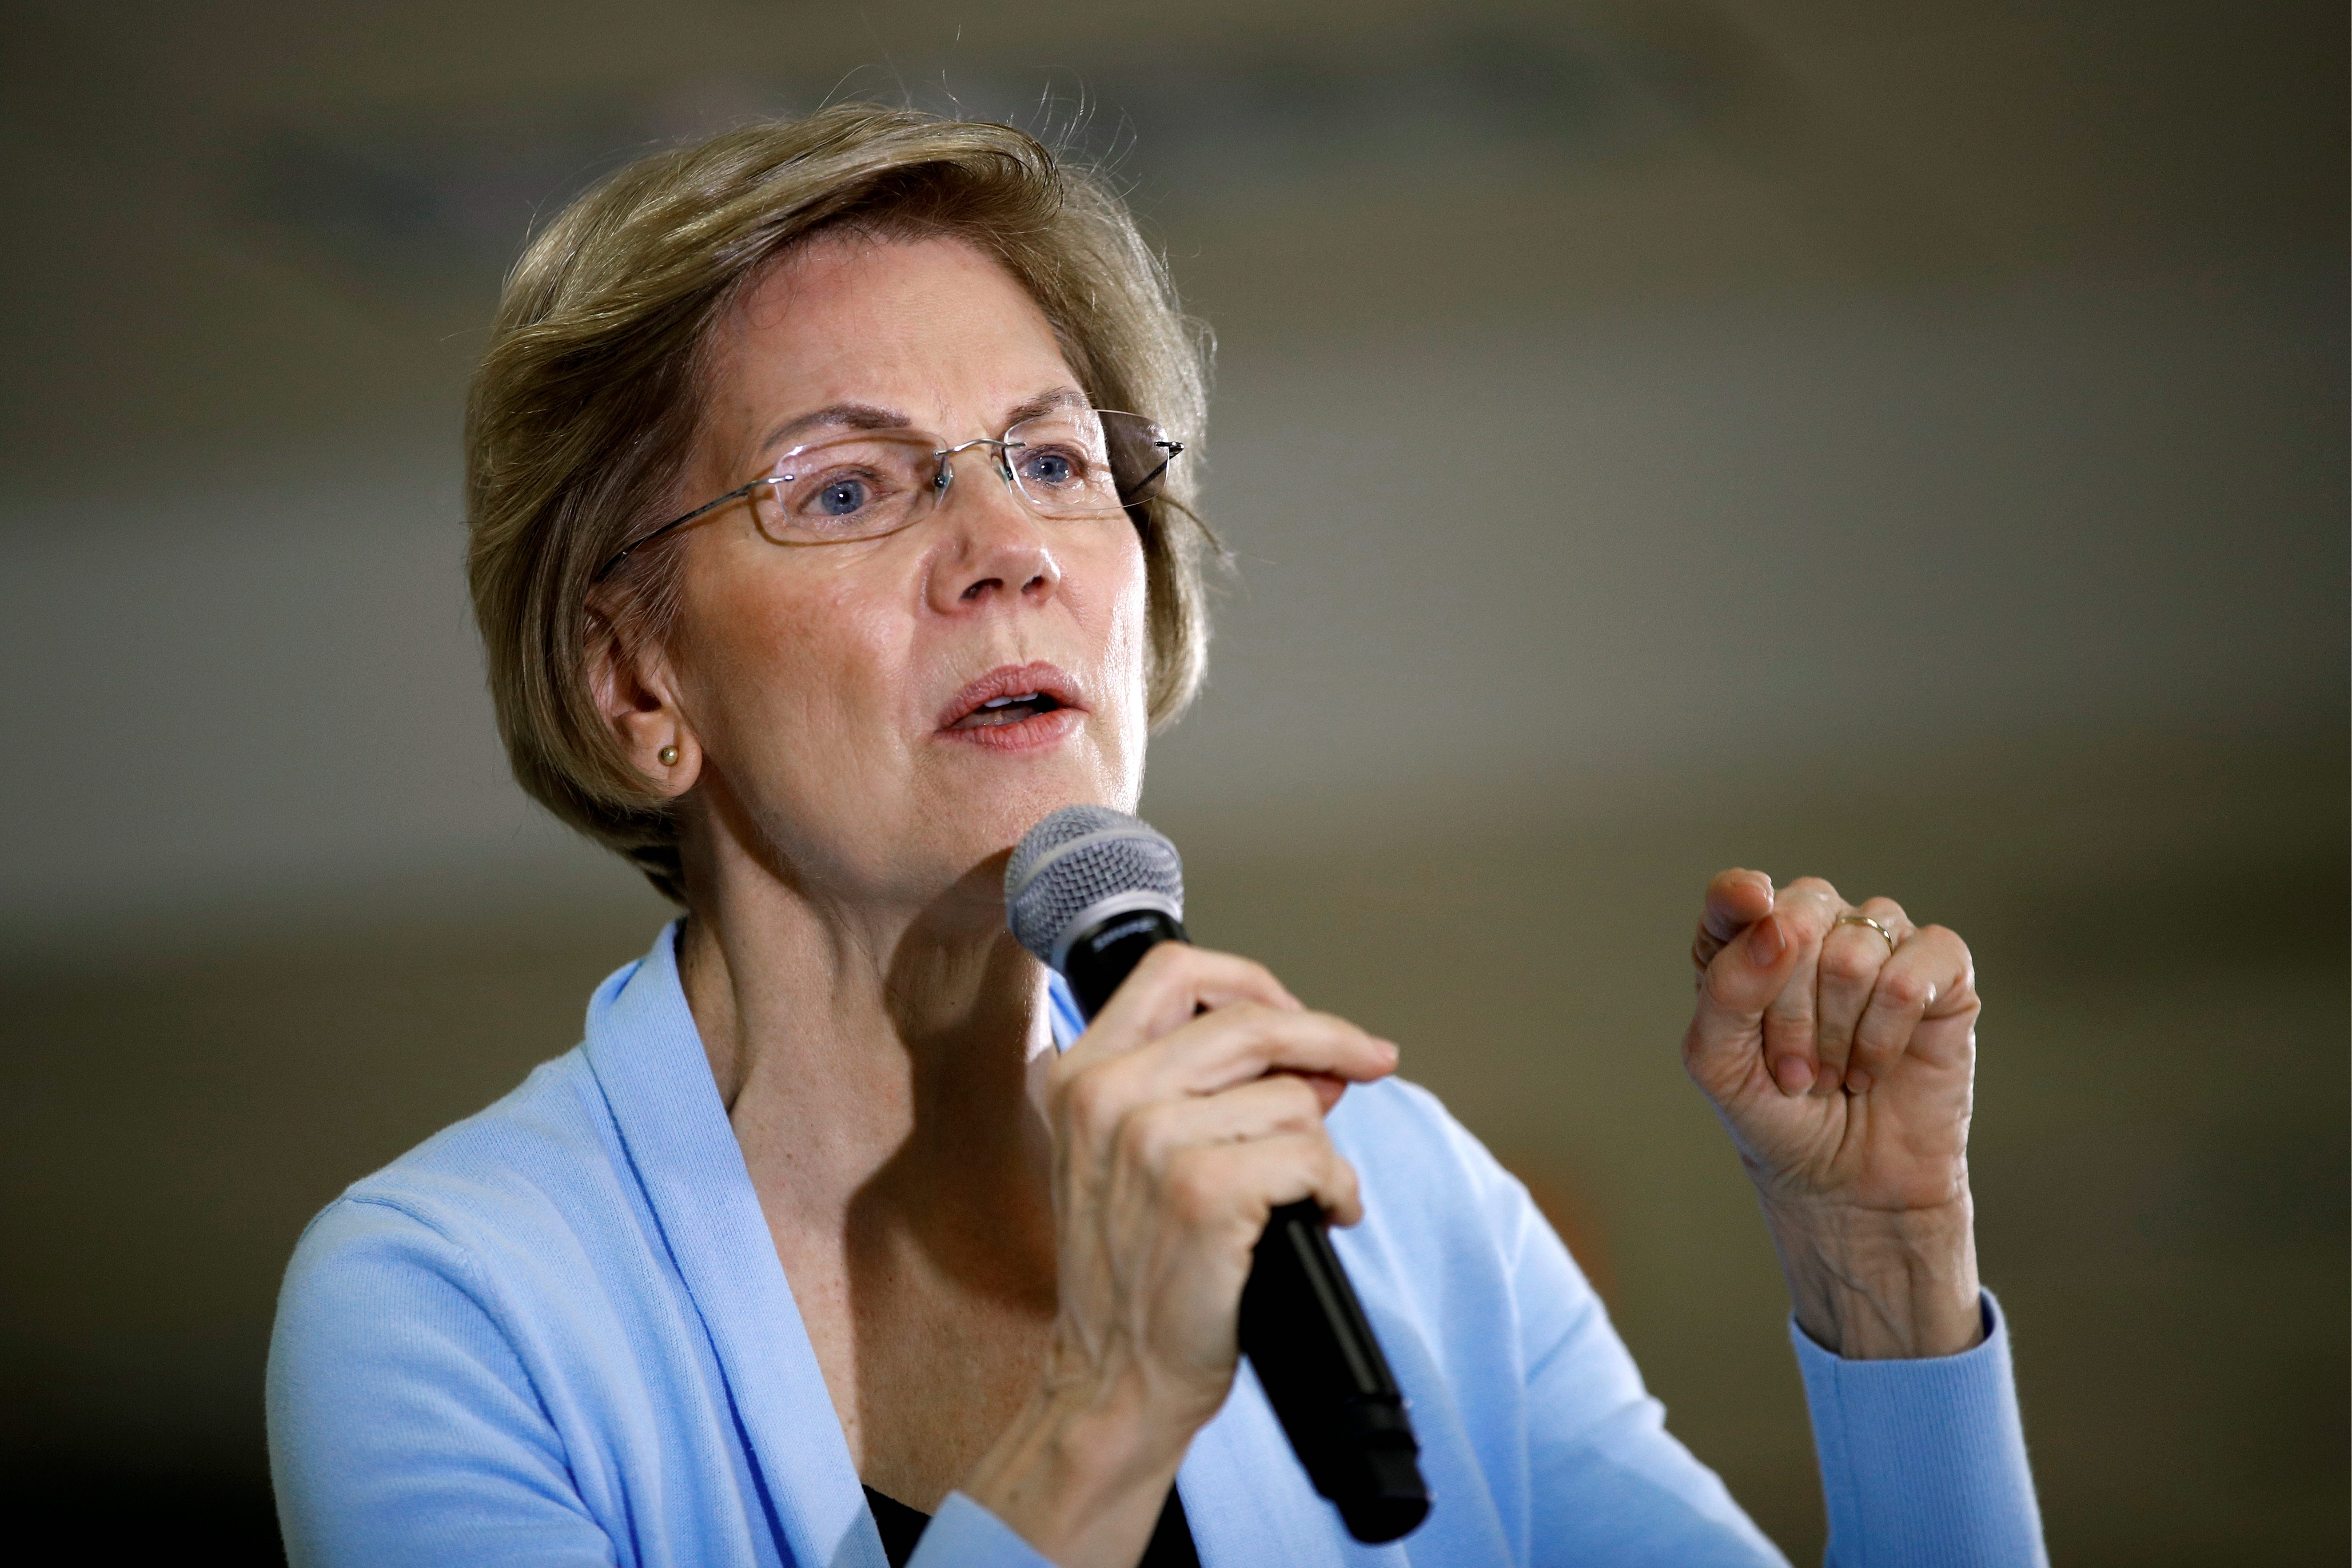 Pathological liar Elizabeth Warren thinks presidential candidates shou